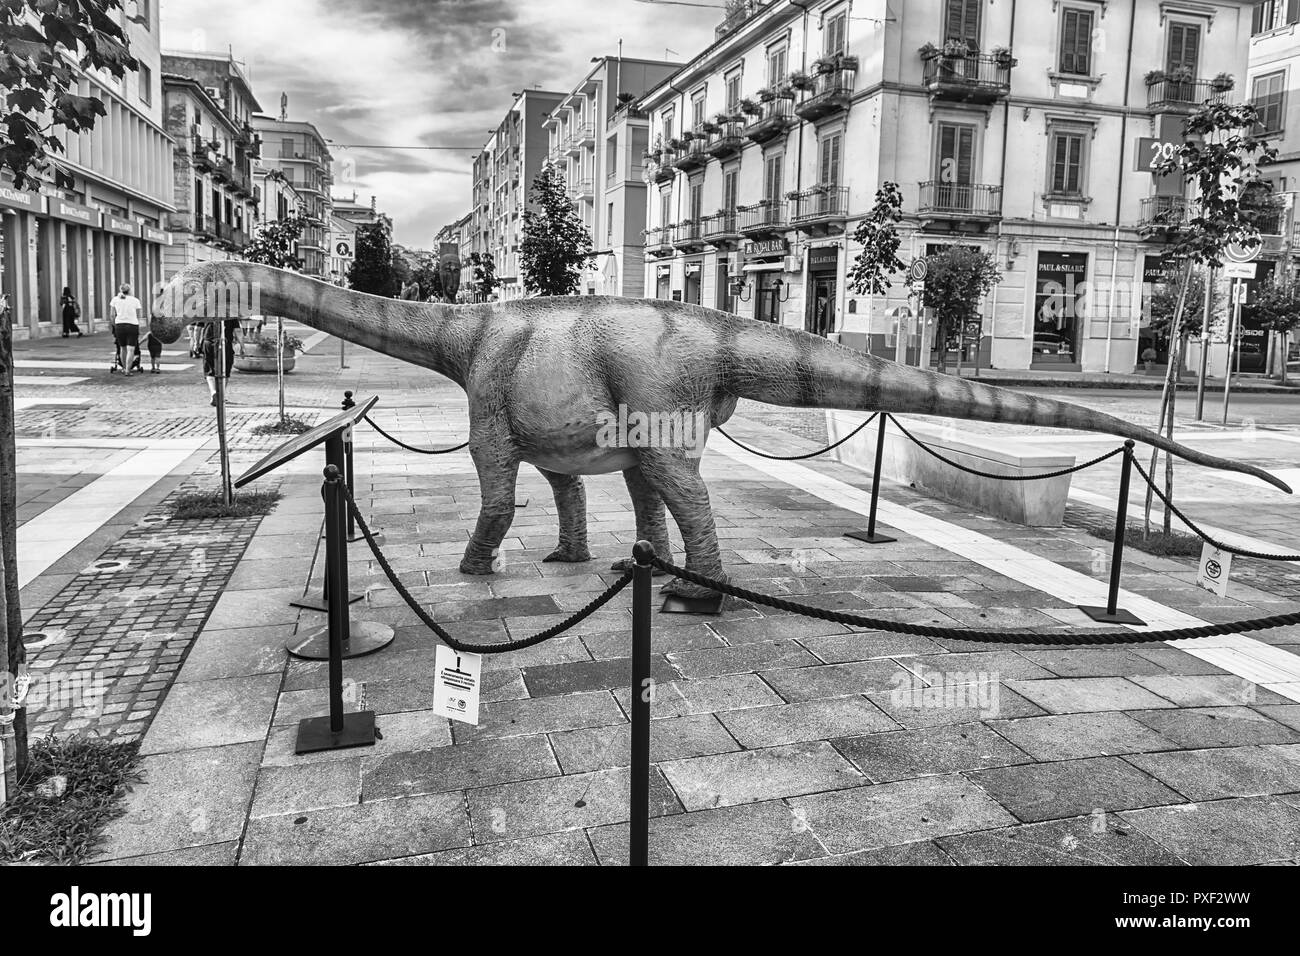 COSENZA, ITALY - AUGUST 25: Dinosaur featured  in the open air exhibition held in Cosenza, Italy, August 25, 2018. - Stock Image